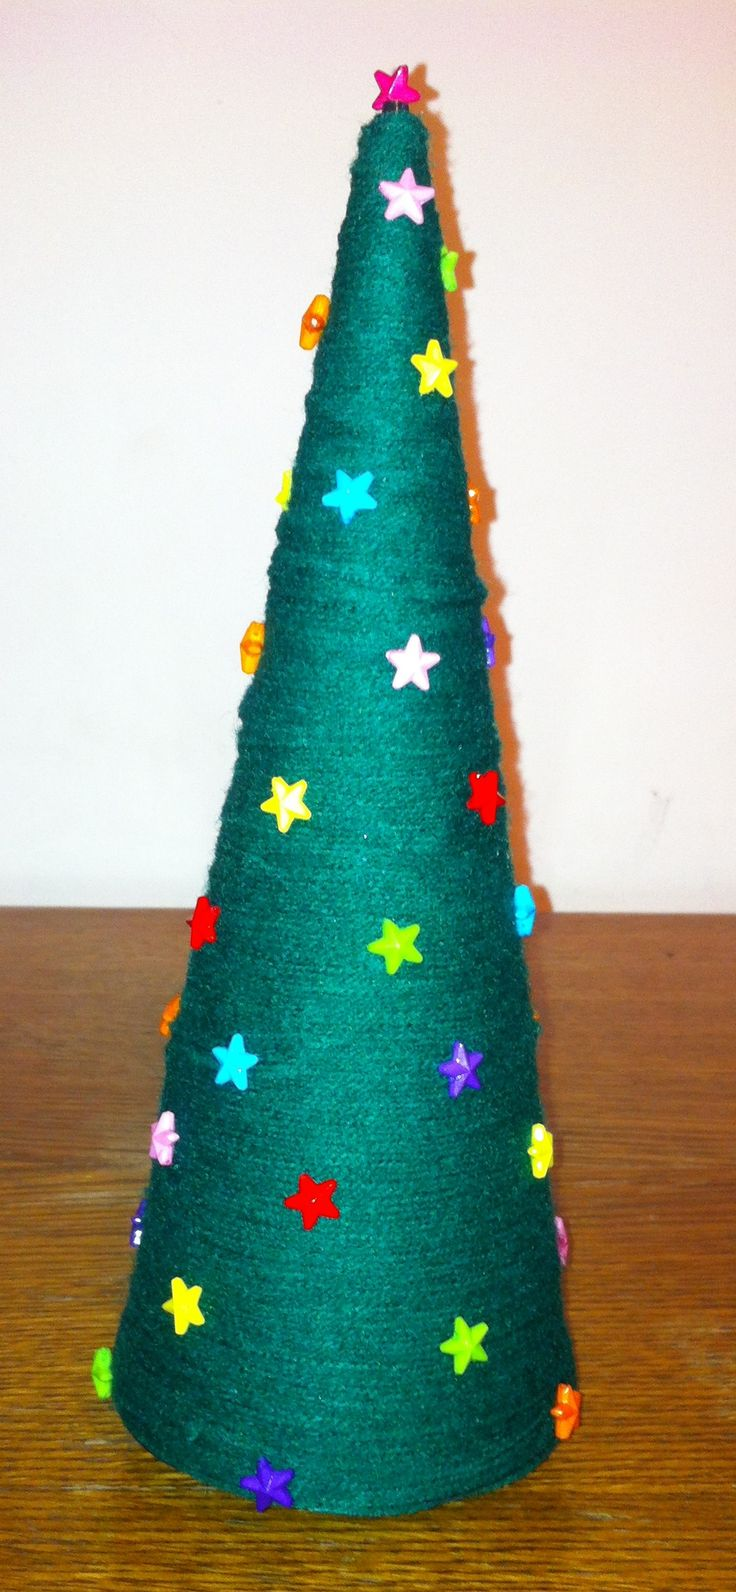 Stars on Christmas tree